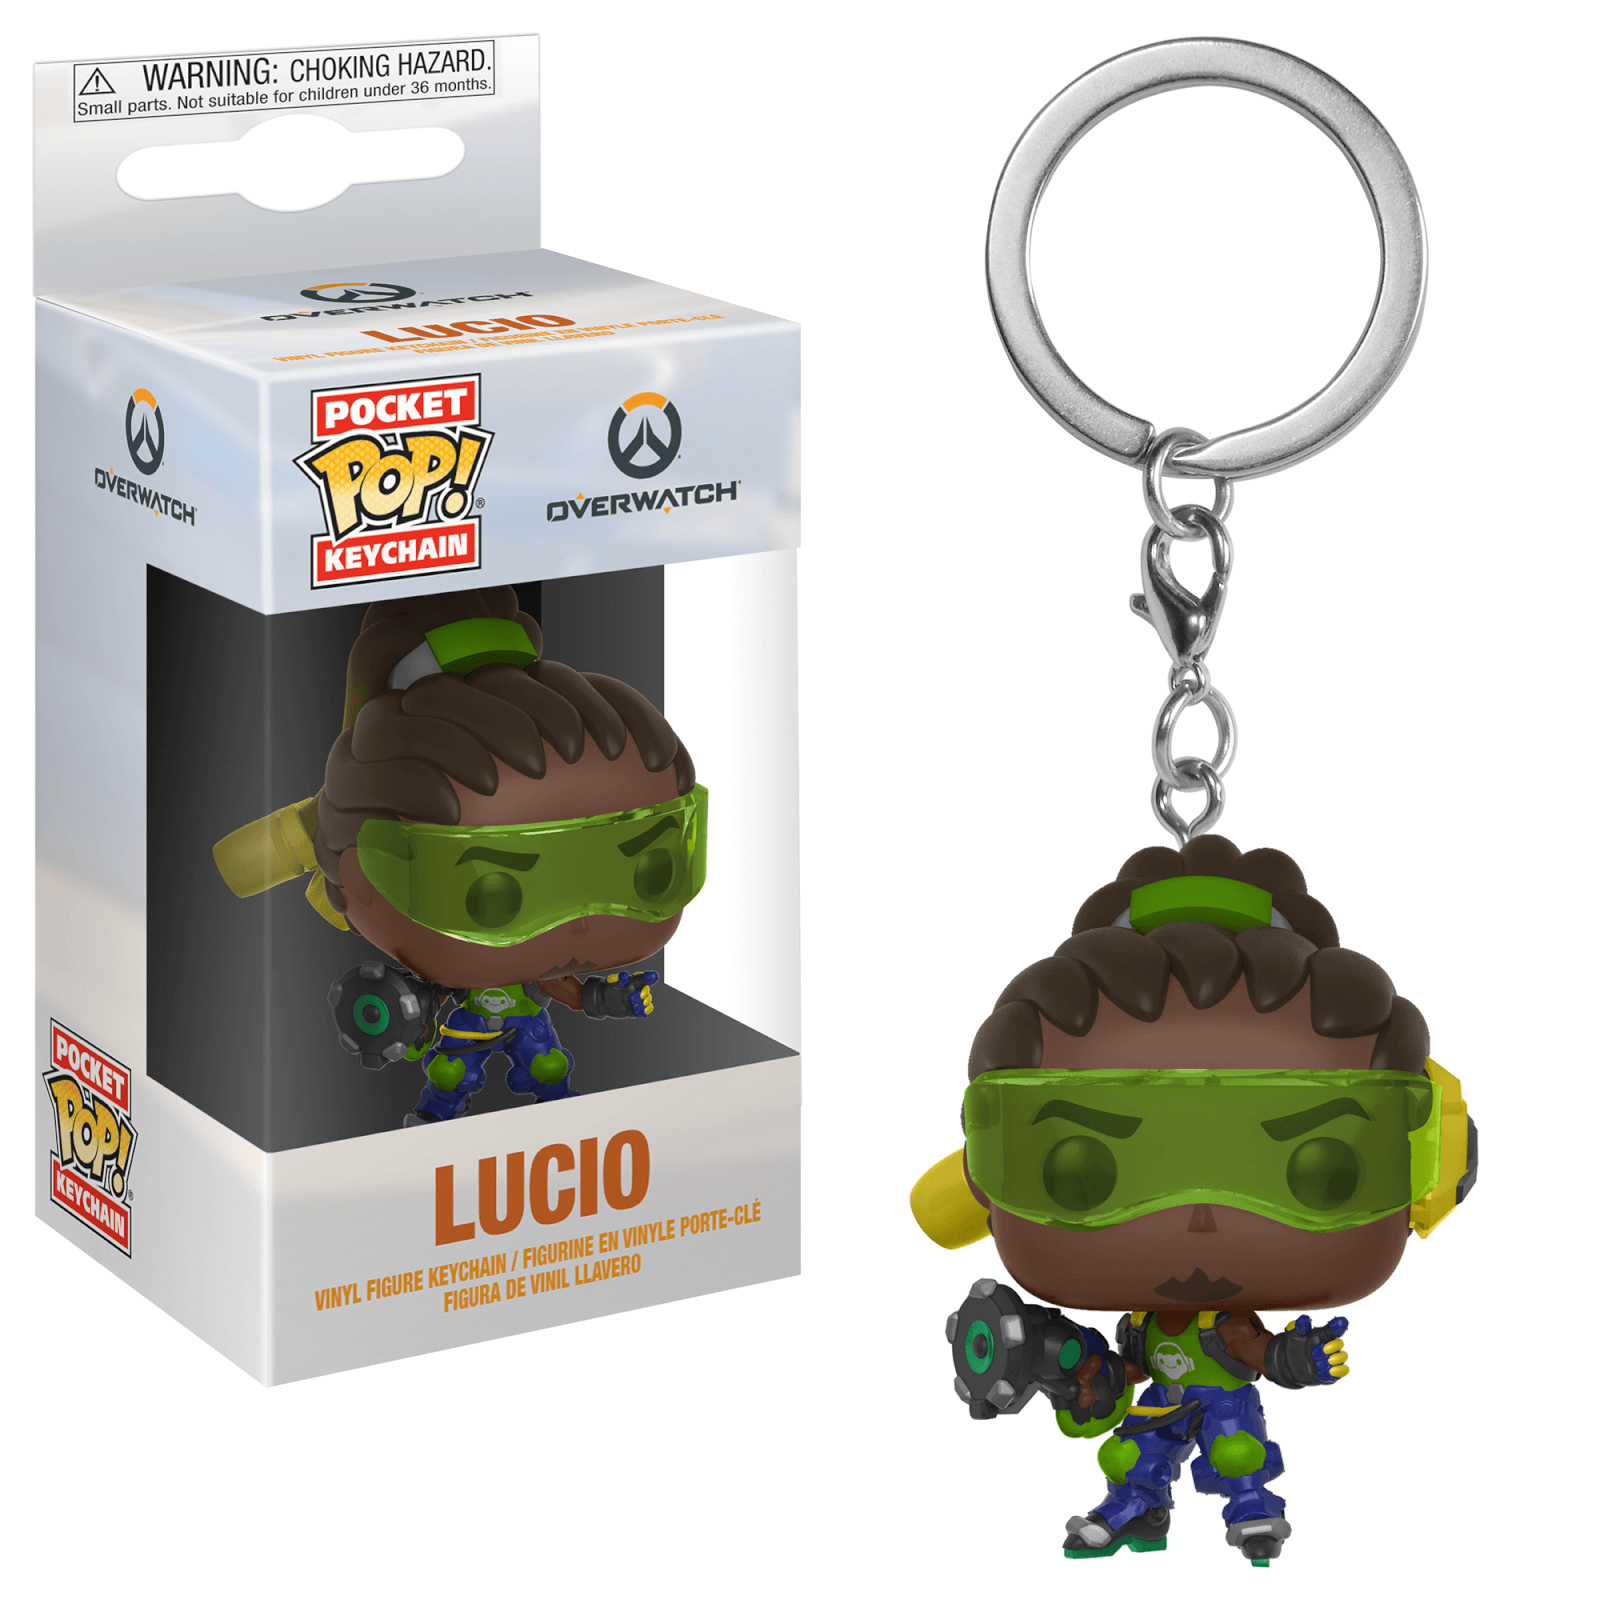 Overwatch Lucio Pop! Keychain